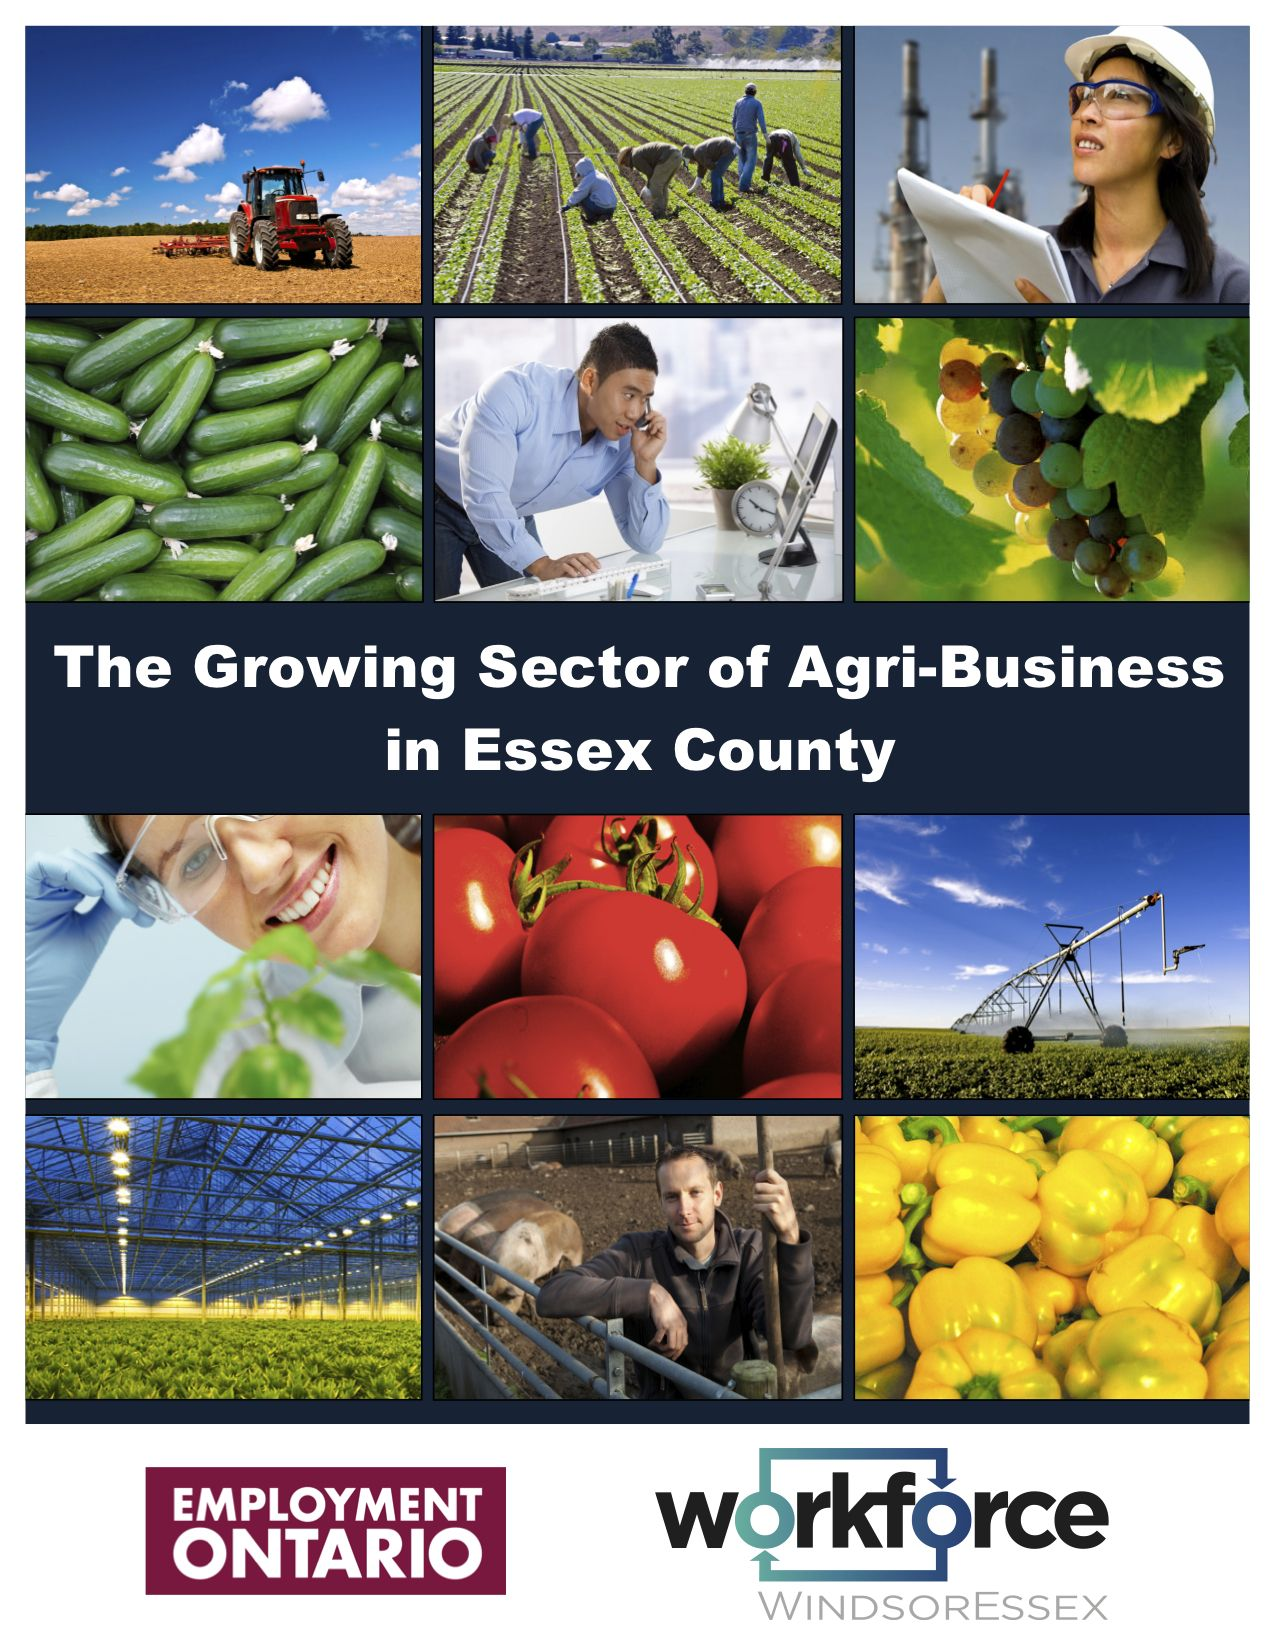 The Growing Sector of Agribusiness in Essex County Report